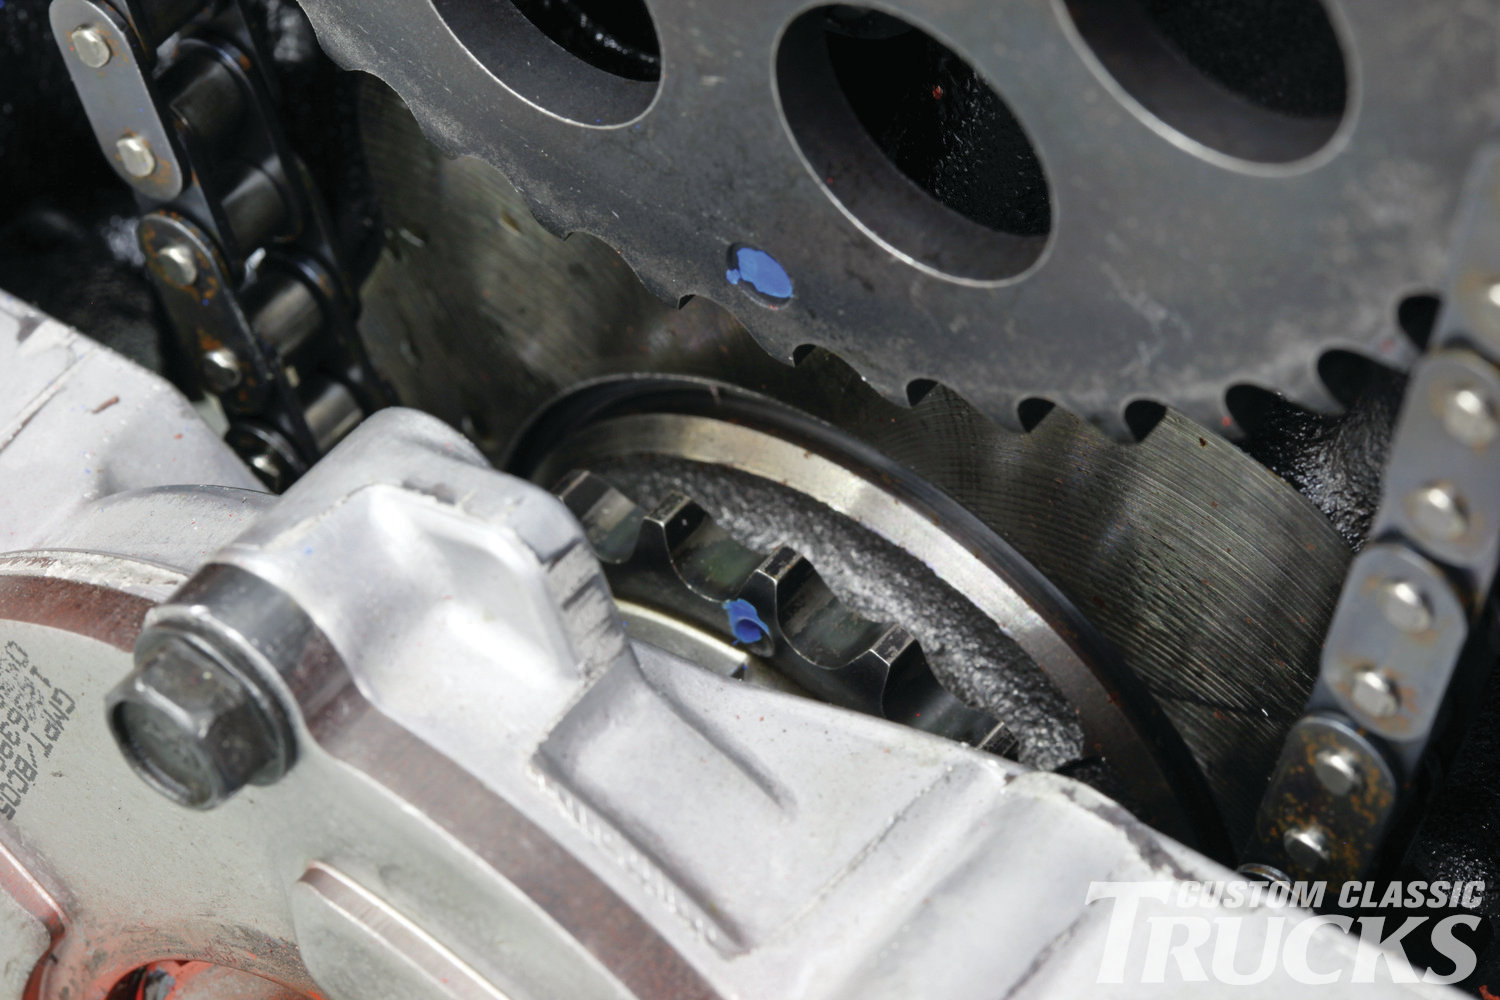 6. Before removing the top timing gear, make sure that you rotate the motor and align the dots on the top and bottom gears. This will ensure proper cam timing when the new one is installed. The blue dots are factory paint marks.